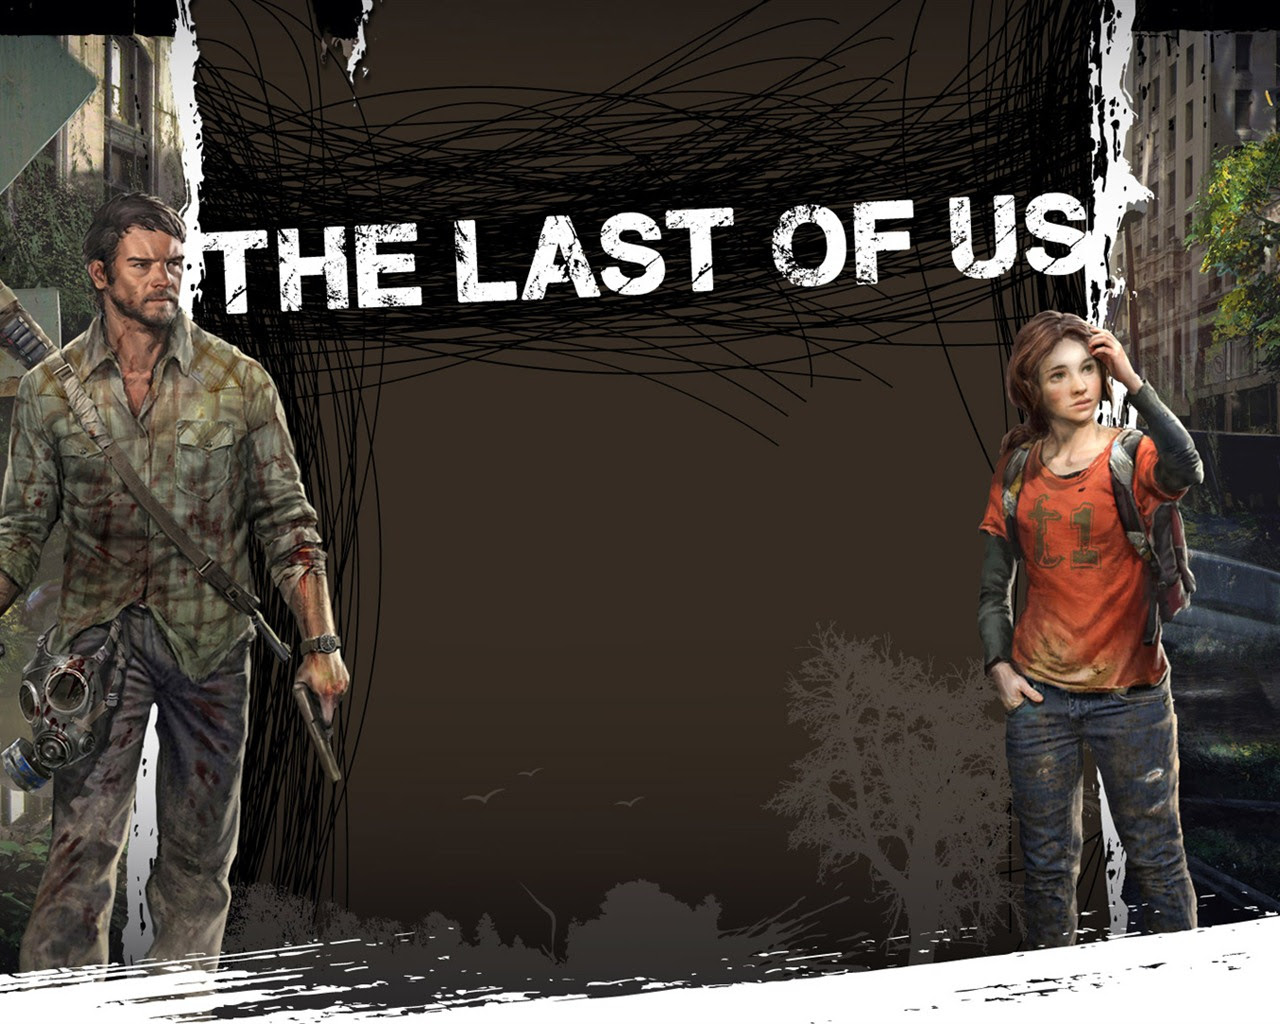 The Last Of Us Hd Game Wallpapers 6 1280x1024 Wallpaper